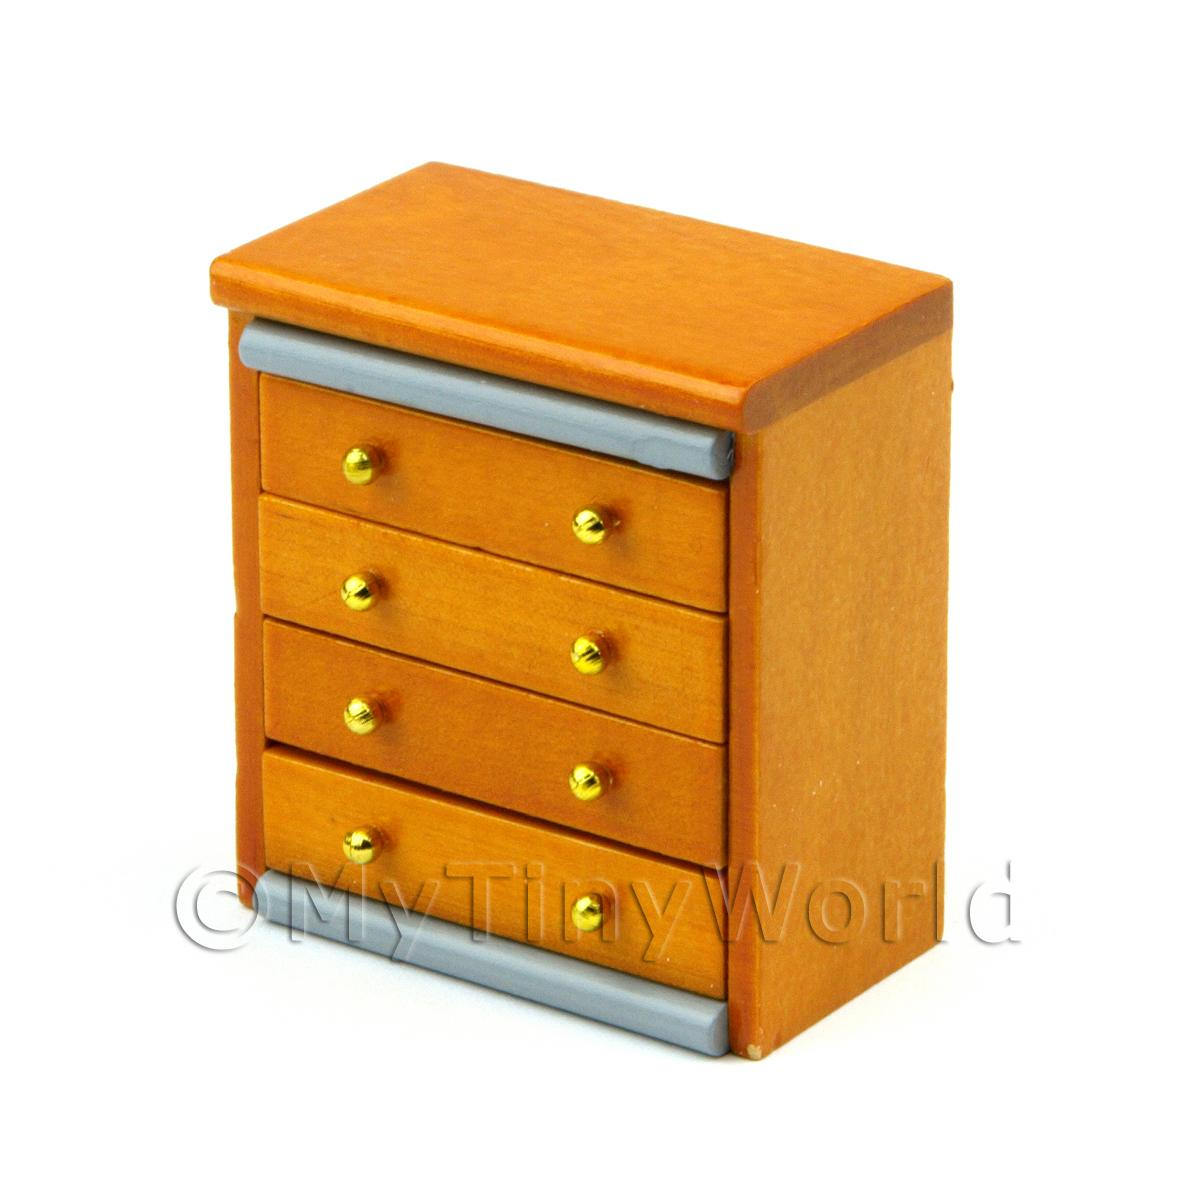 Dolls House Miniature Childrens Chest of Drawers